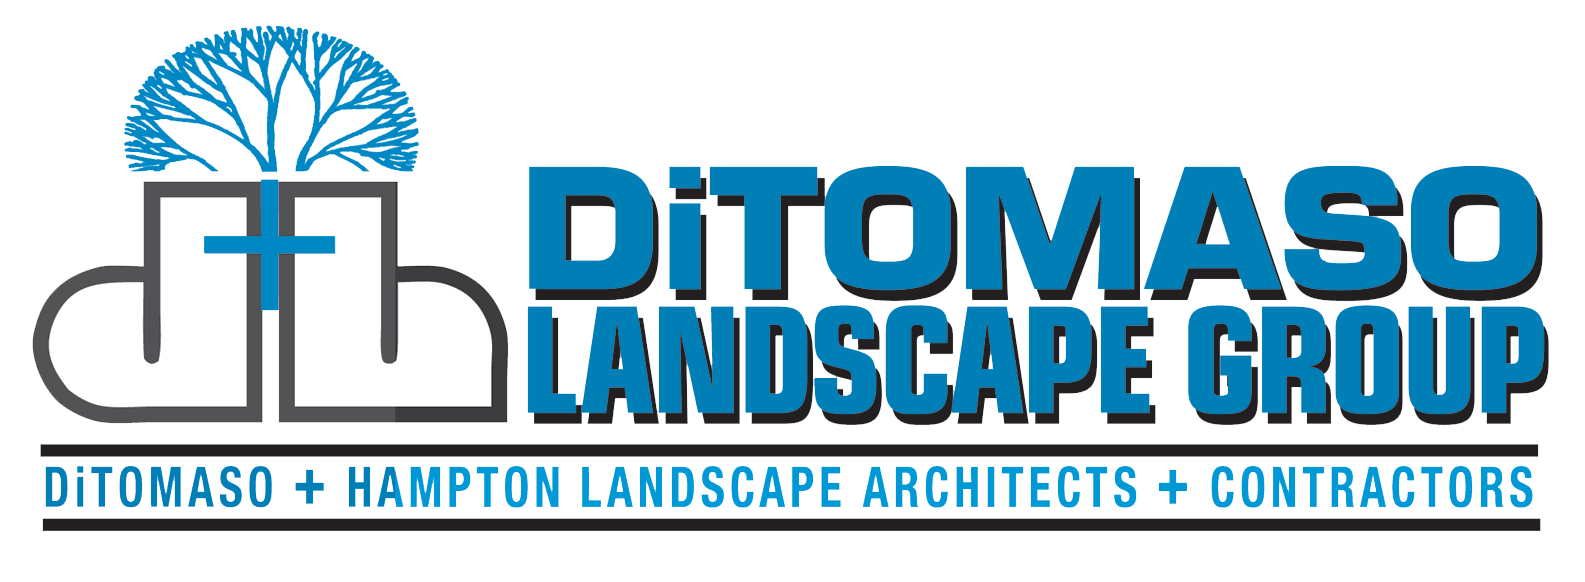 Project management bergen county nj dh land group 1betcityfo Image collections